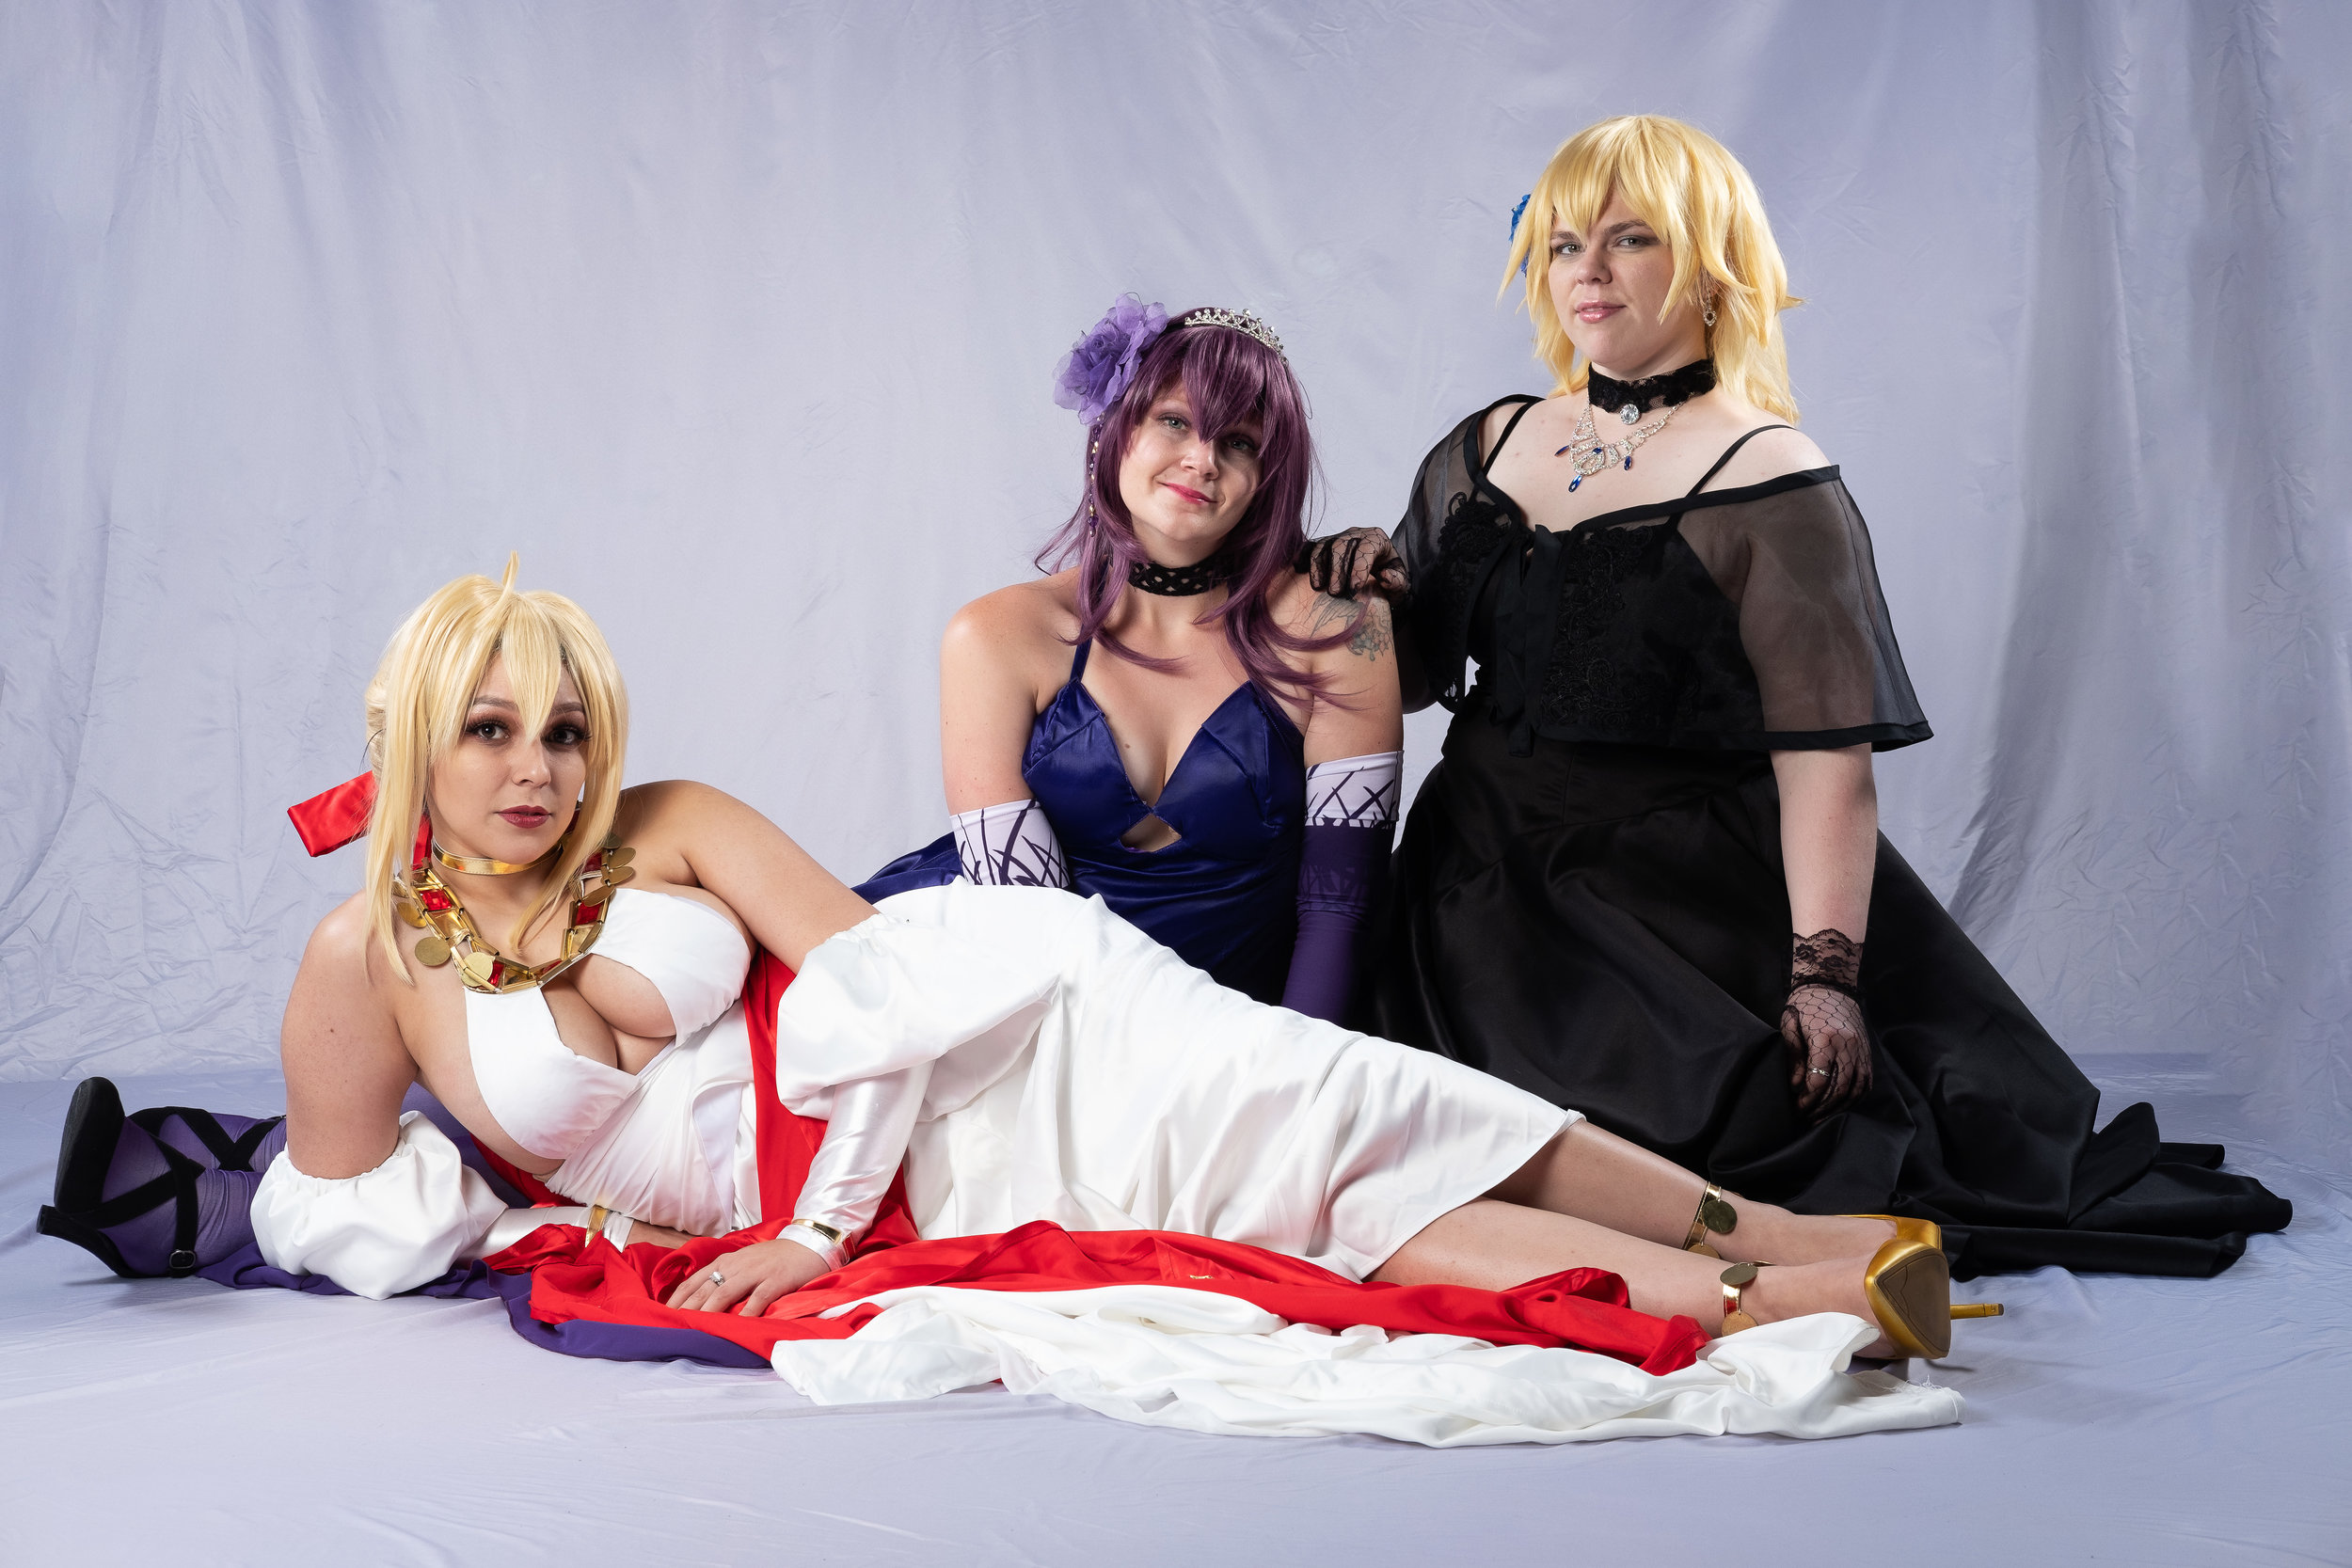 Allybelle Cosplay, Tacocat Cosplay, and Mermaid Child cosplaying characters from Fate/Grand Order